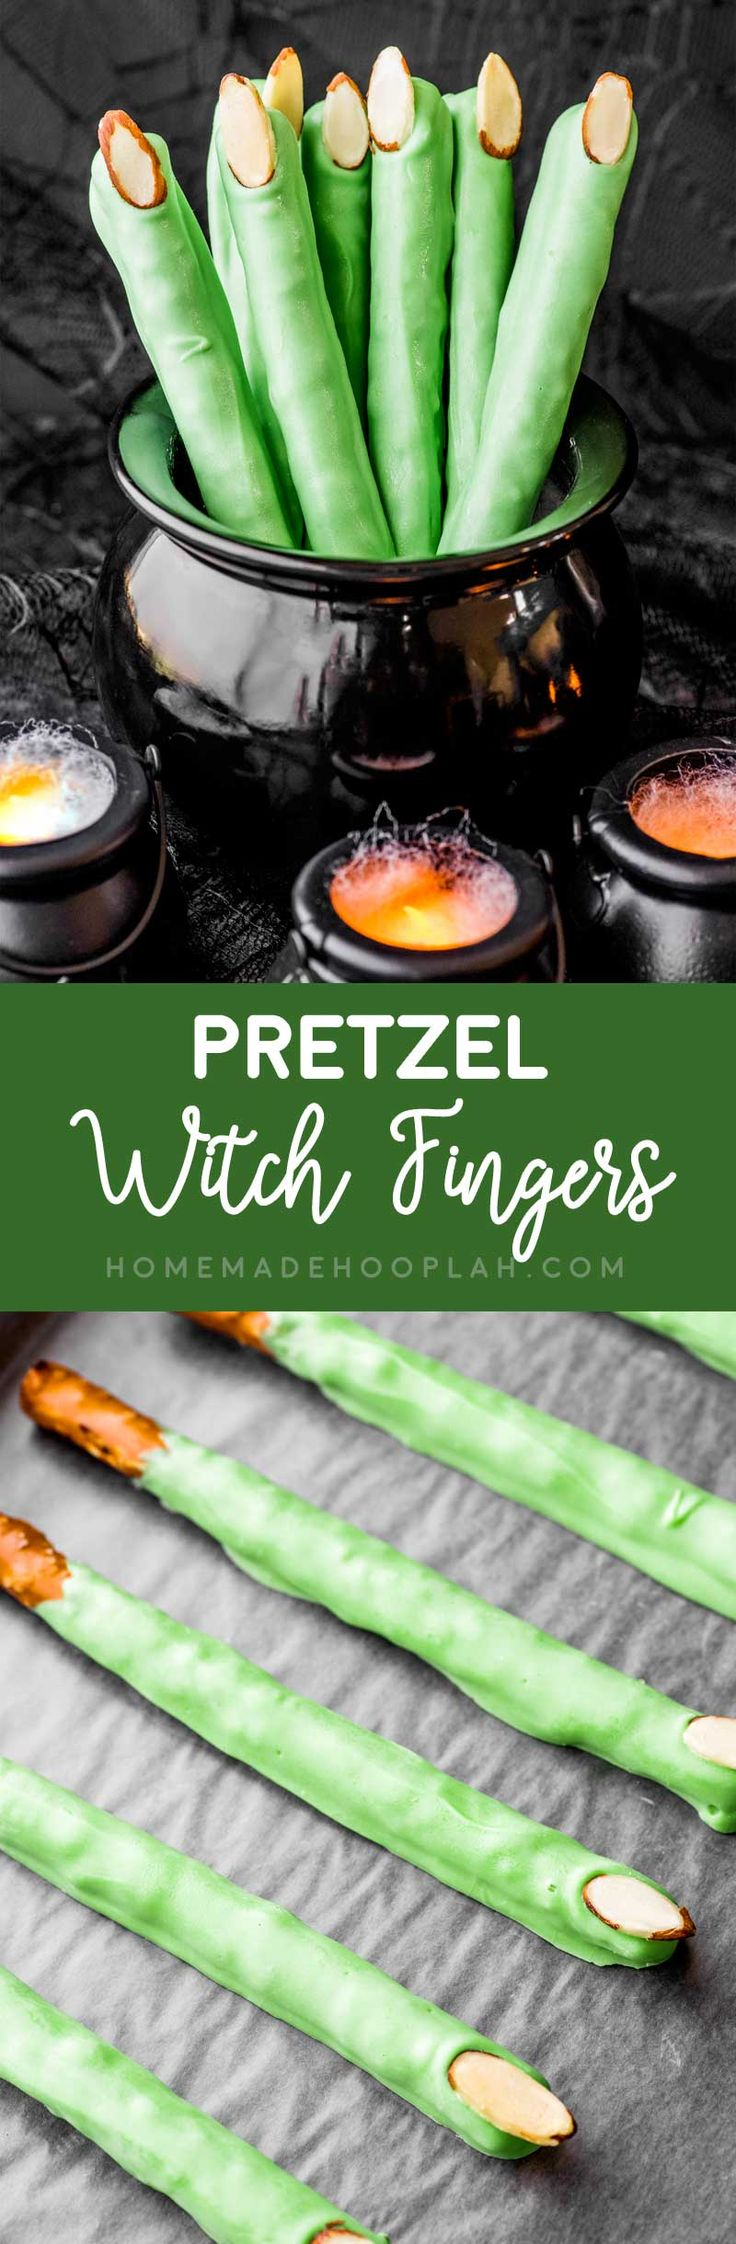 Pretzel Witch Fingers! Large pretzels covered in white candy coating that just happen to look like witch fingers. They're very easy to make and perfect for any witchy party! | HomemadeHooplah.com